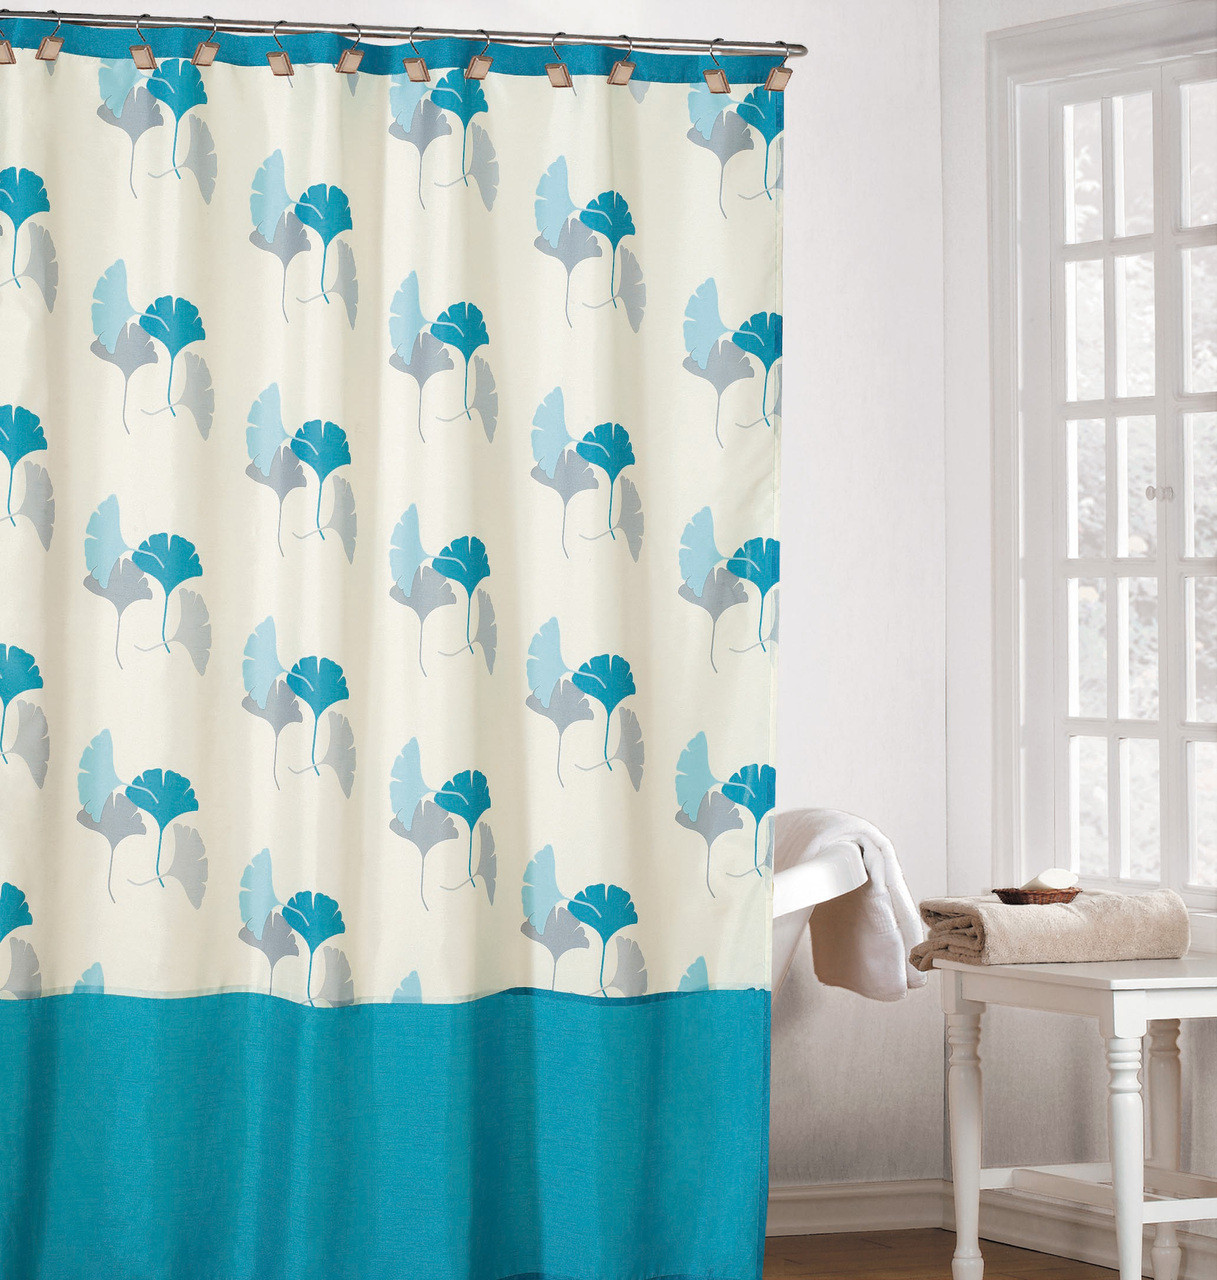 refreshing off white color fabric shower curtain with light blue gray and turquoise gingko leaf design